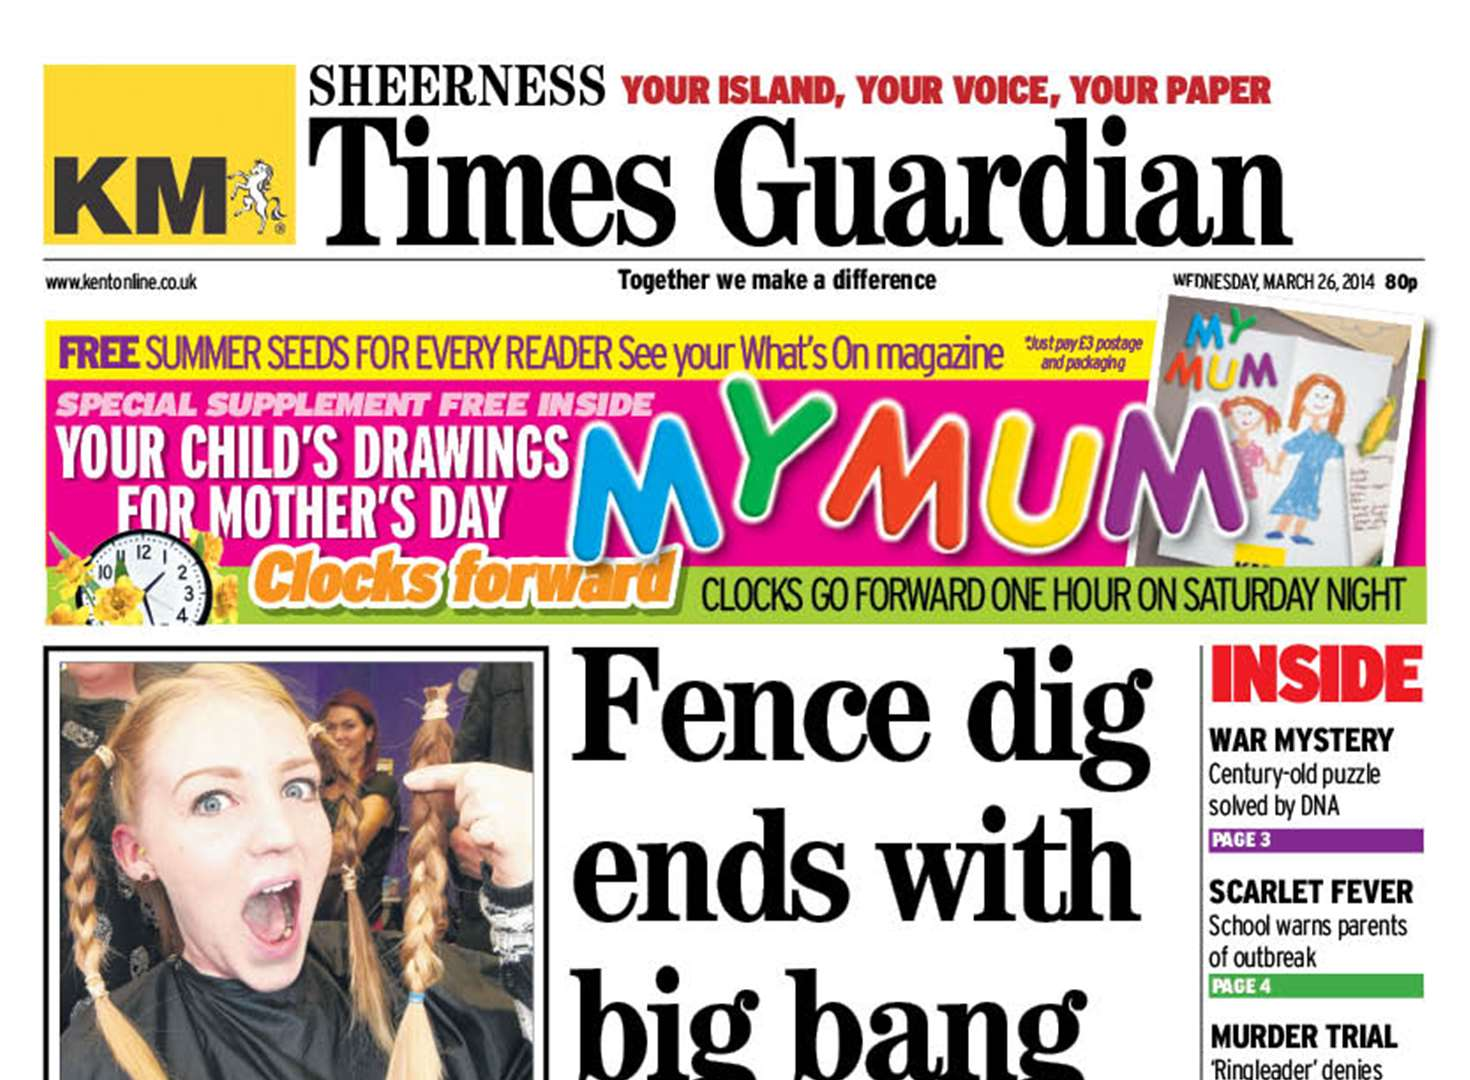 Inside this week's Sheerness Times Guardian